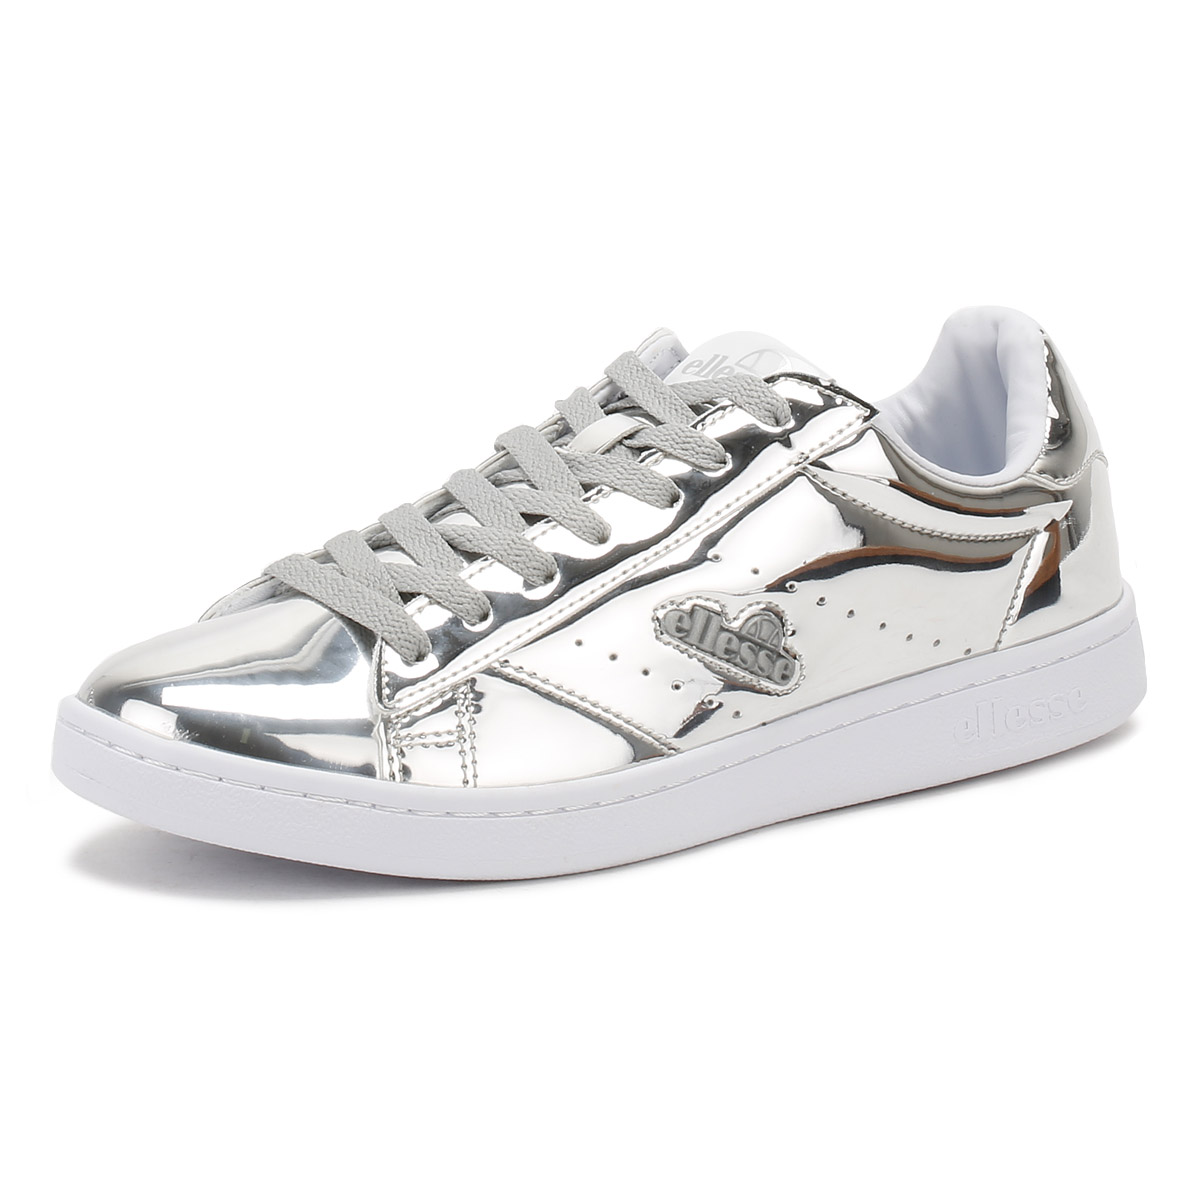 Find great deals on eBay for adidas metallic silver. Shop with confidence.